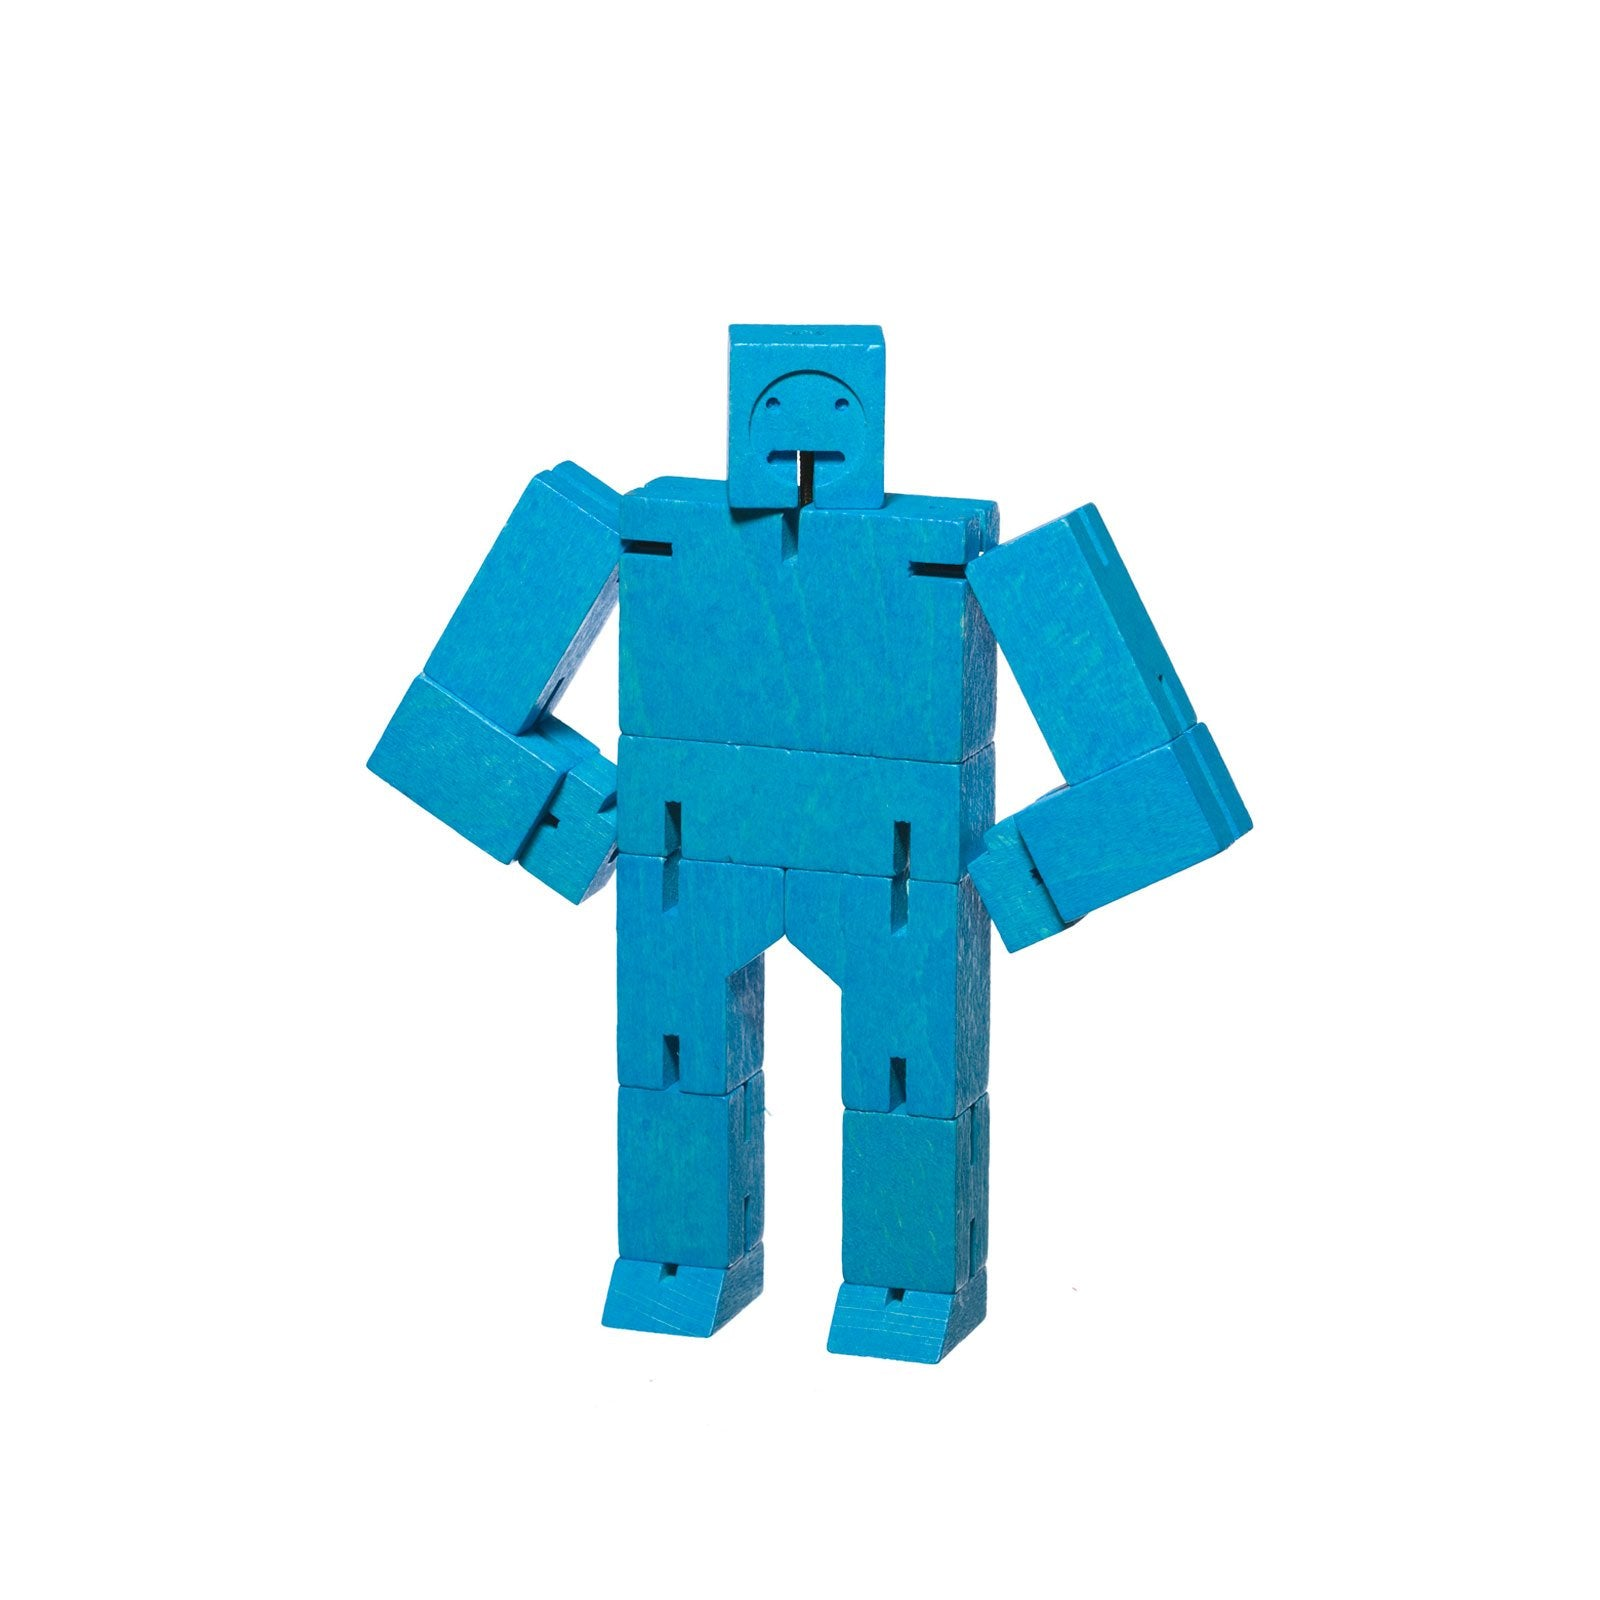 Cubebots David Weeks Studio Activity Toys Micro / Blue at Little Earth Nest Eco Shop